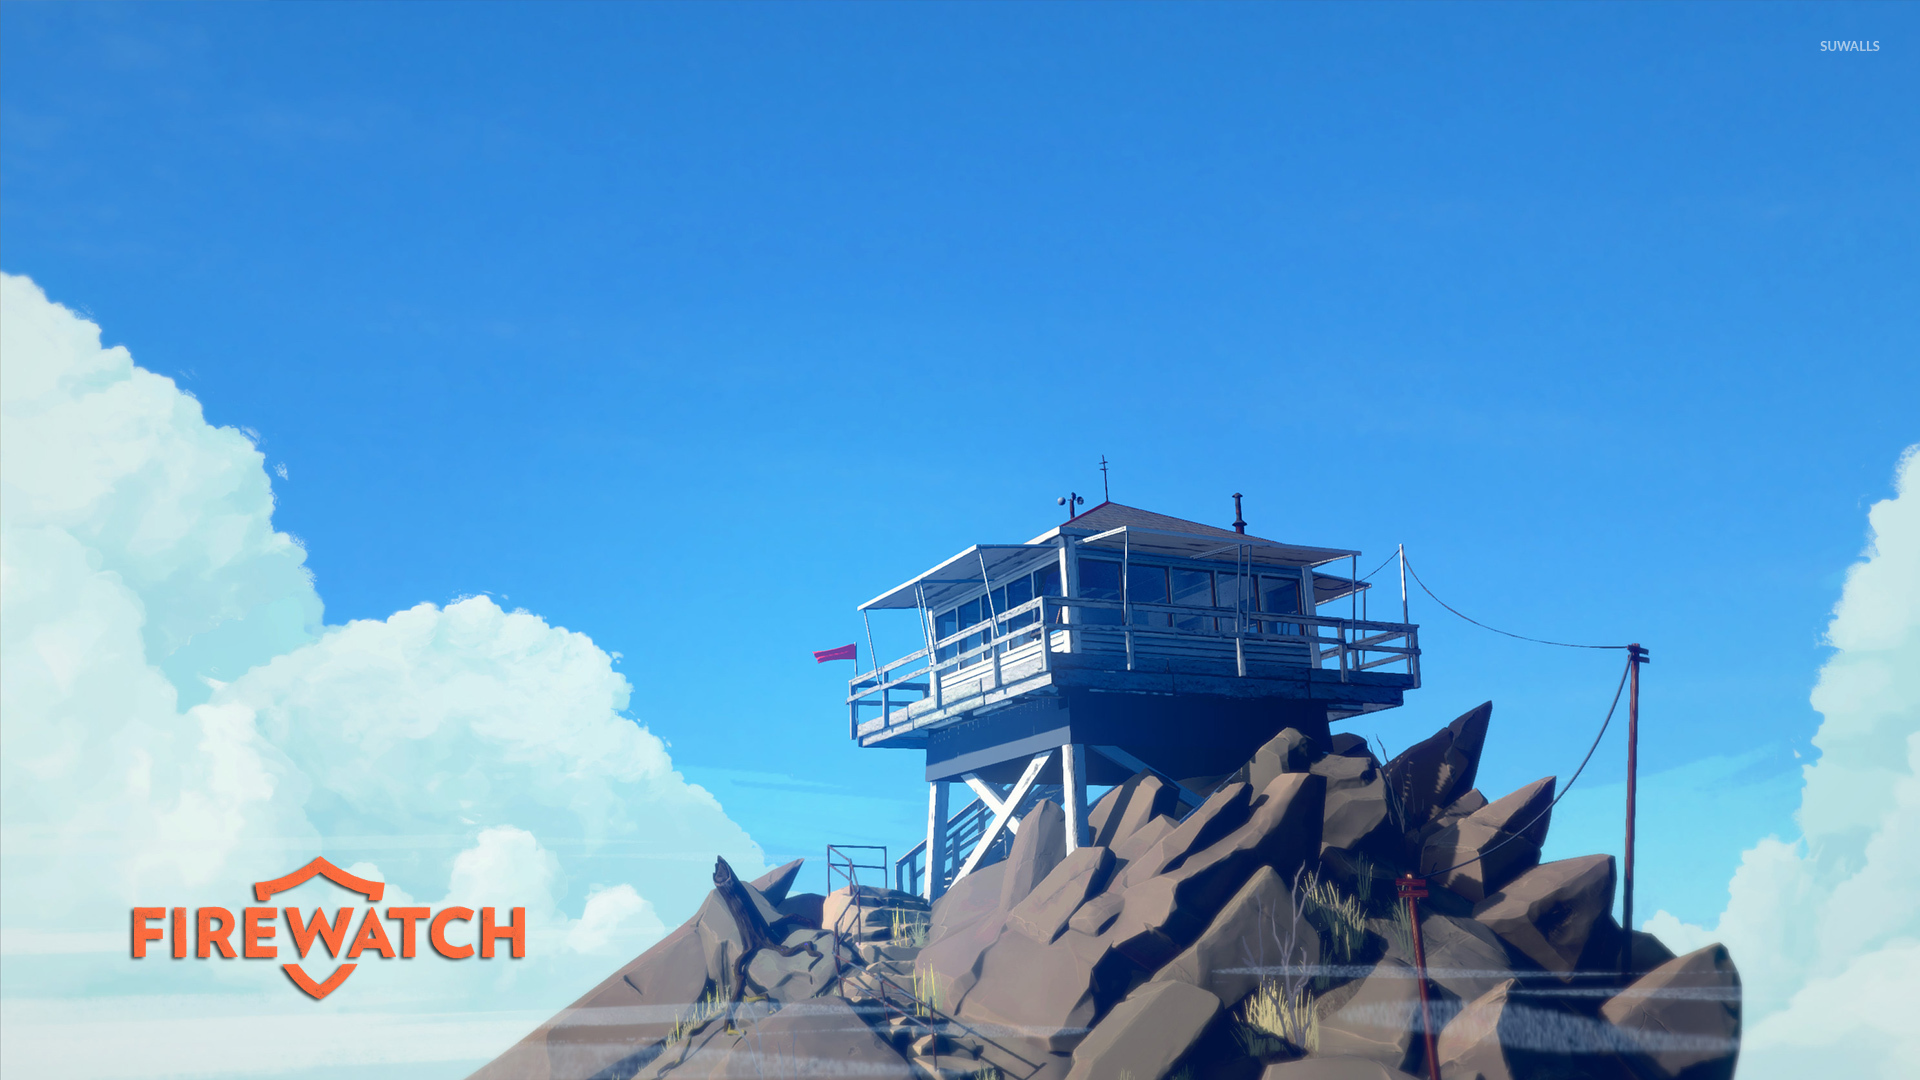 Fire Lookout Tower On The Cliff - Fire Watch , HD Wallpaper & Backgrounds